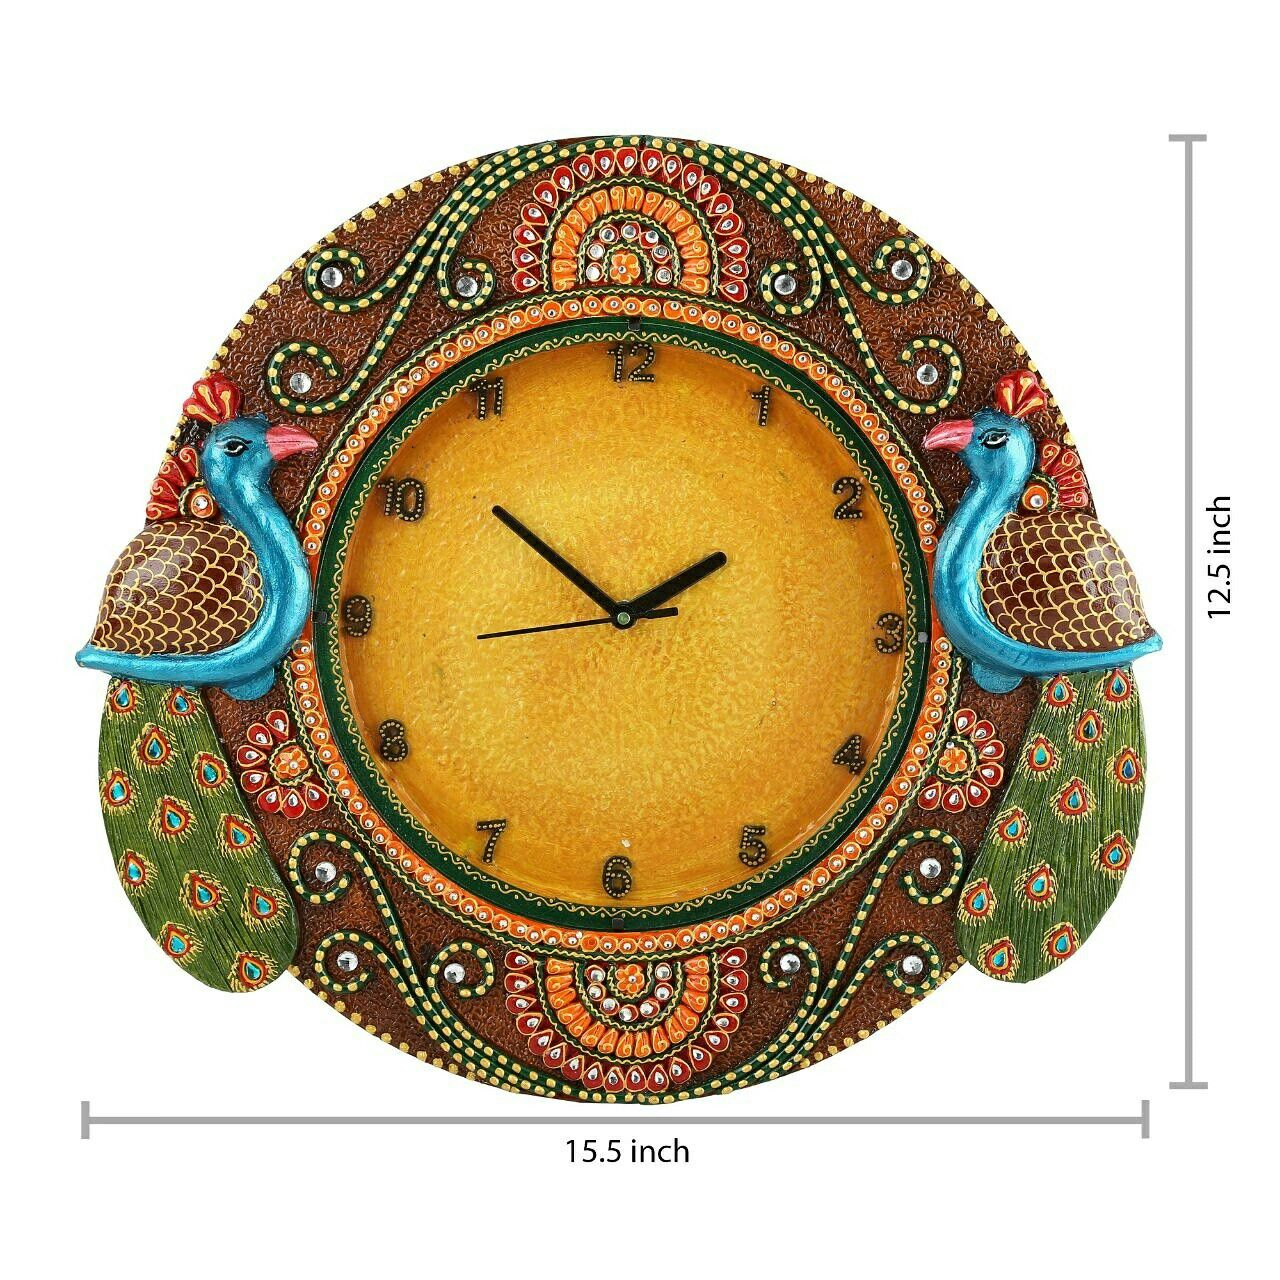 Traditional hand made paper mache wall clock | homedecor | Pinterest ...